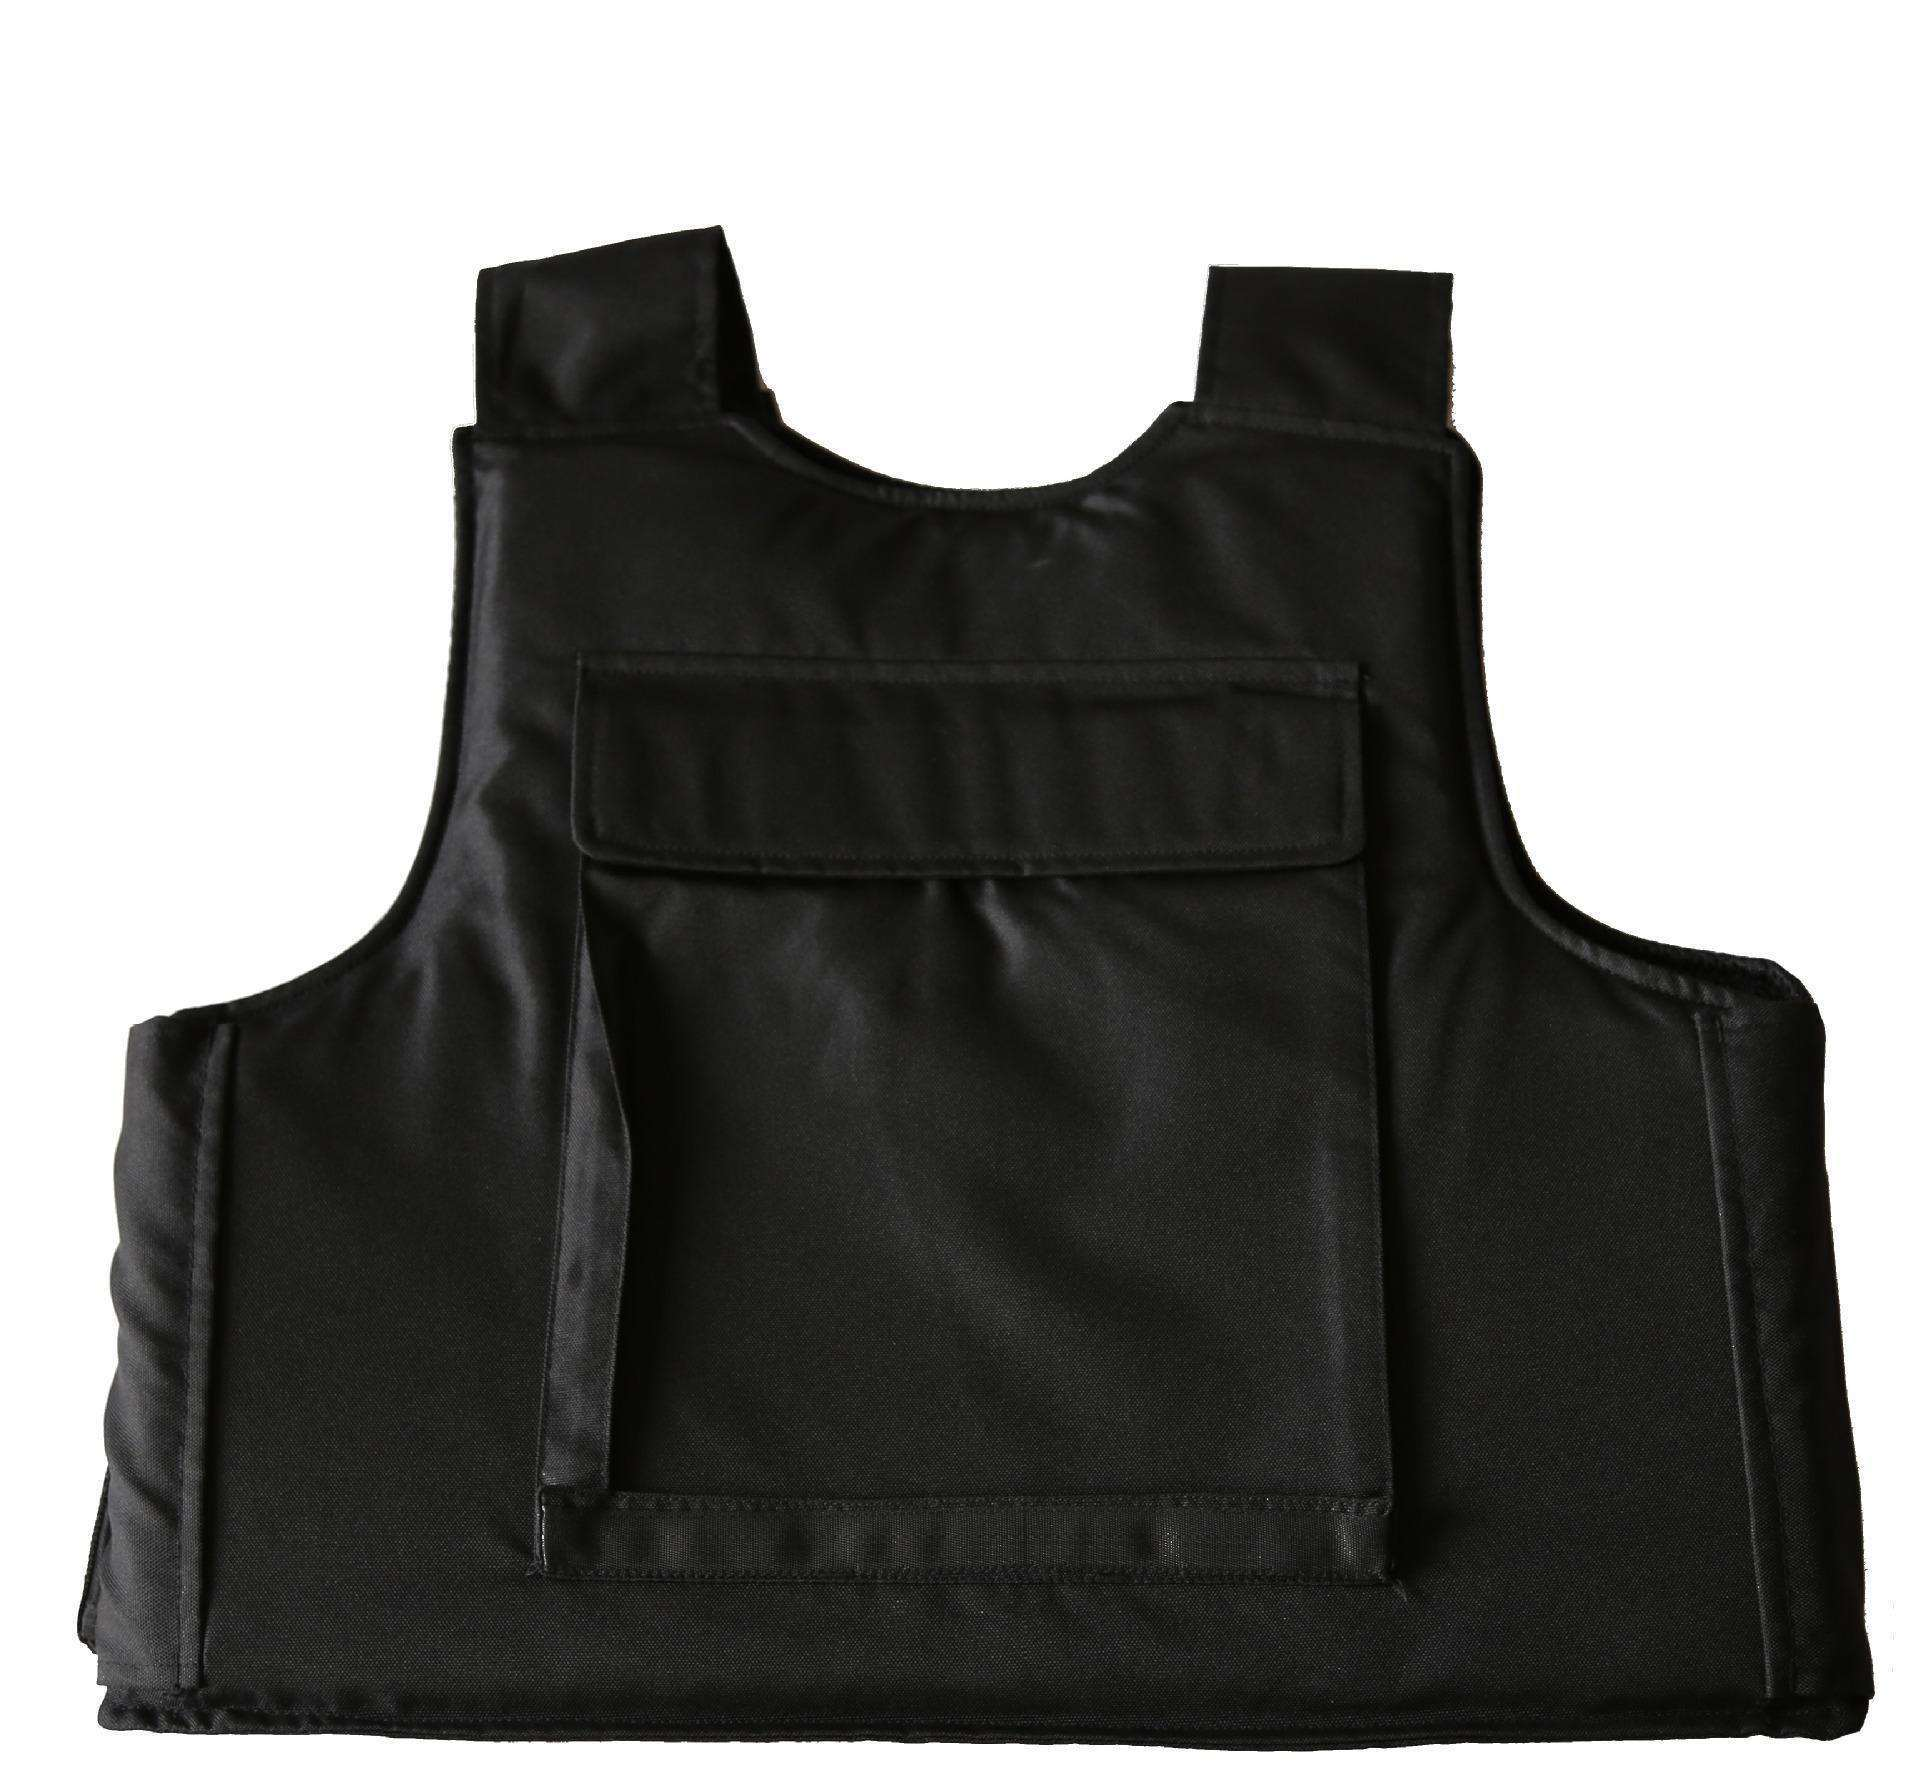 Law Enforcement Military Bulletproof Vest